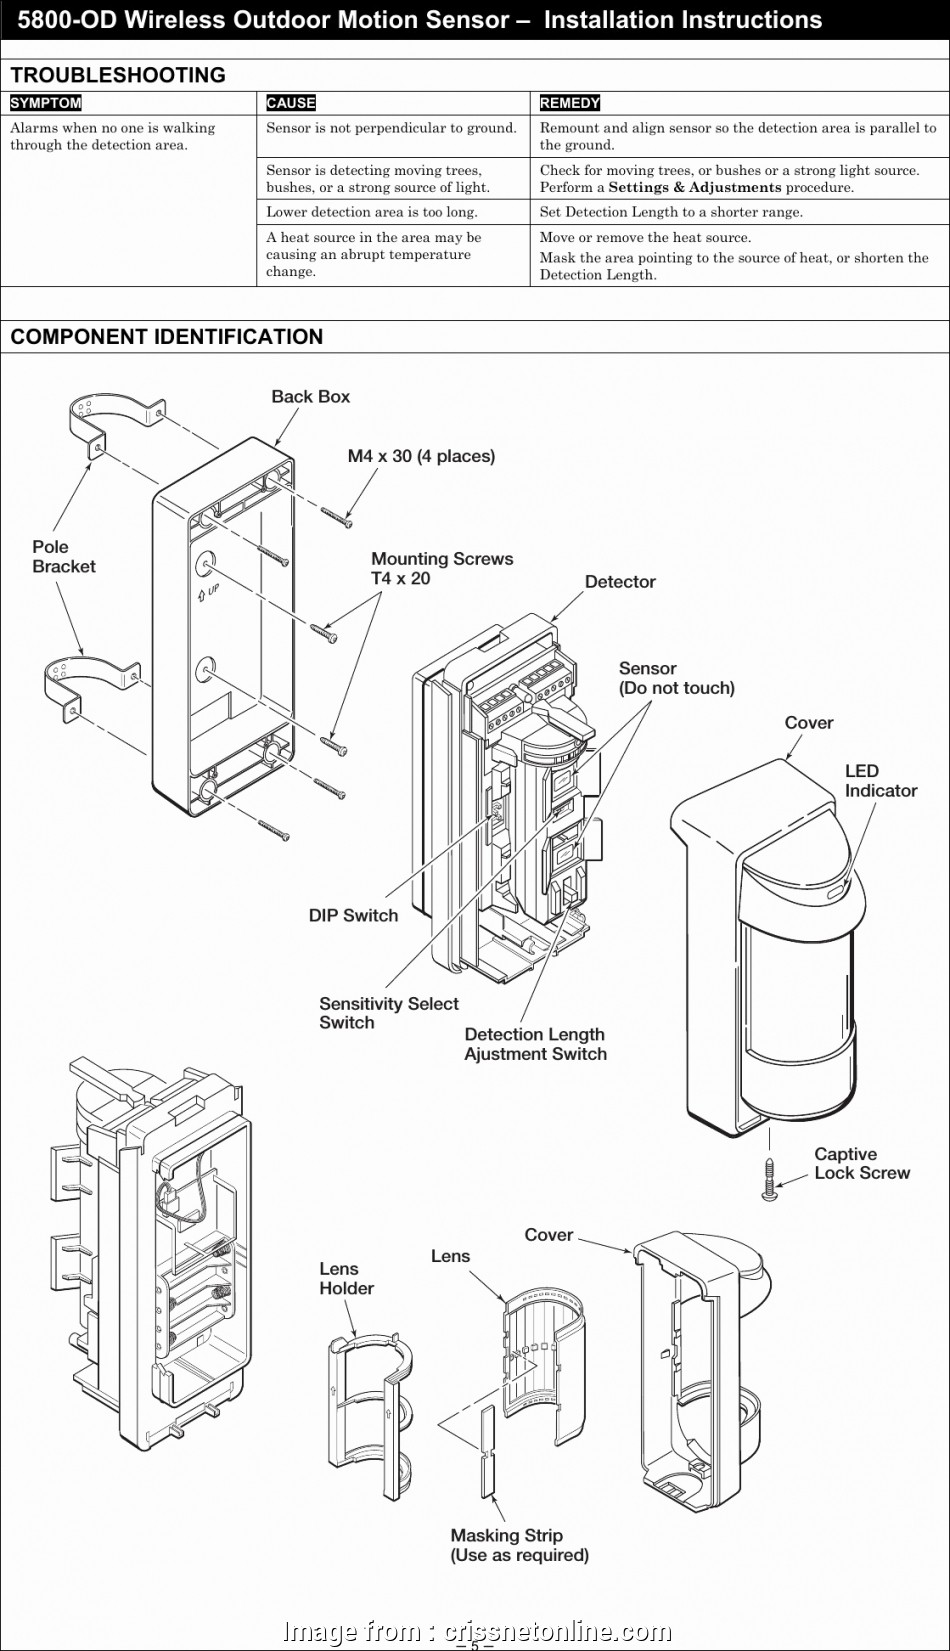 3, Switch Wiring Instructions Professional 4-Way Switch